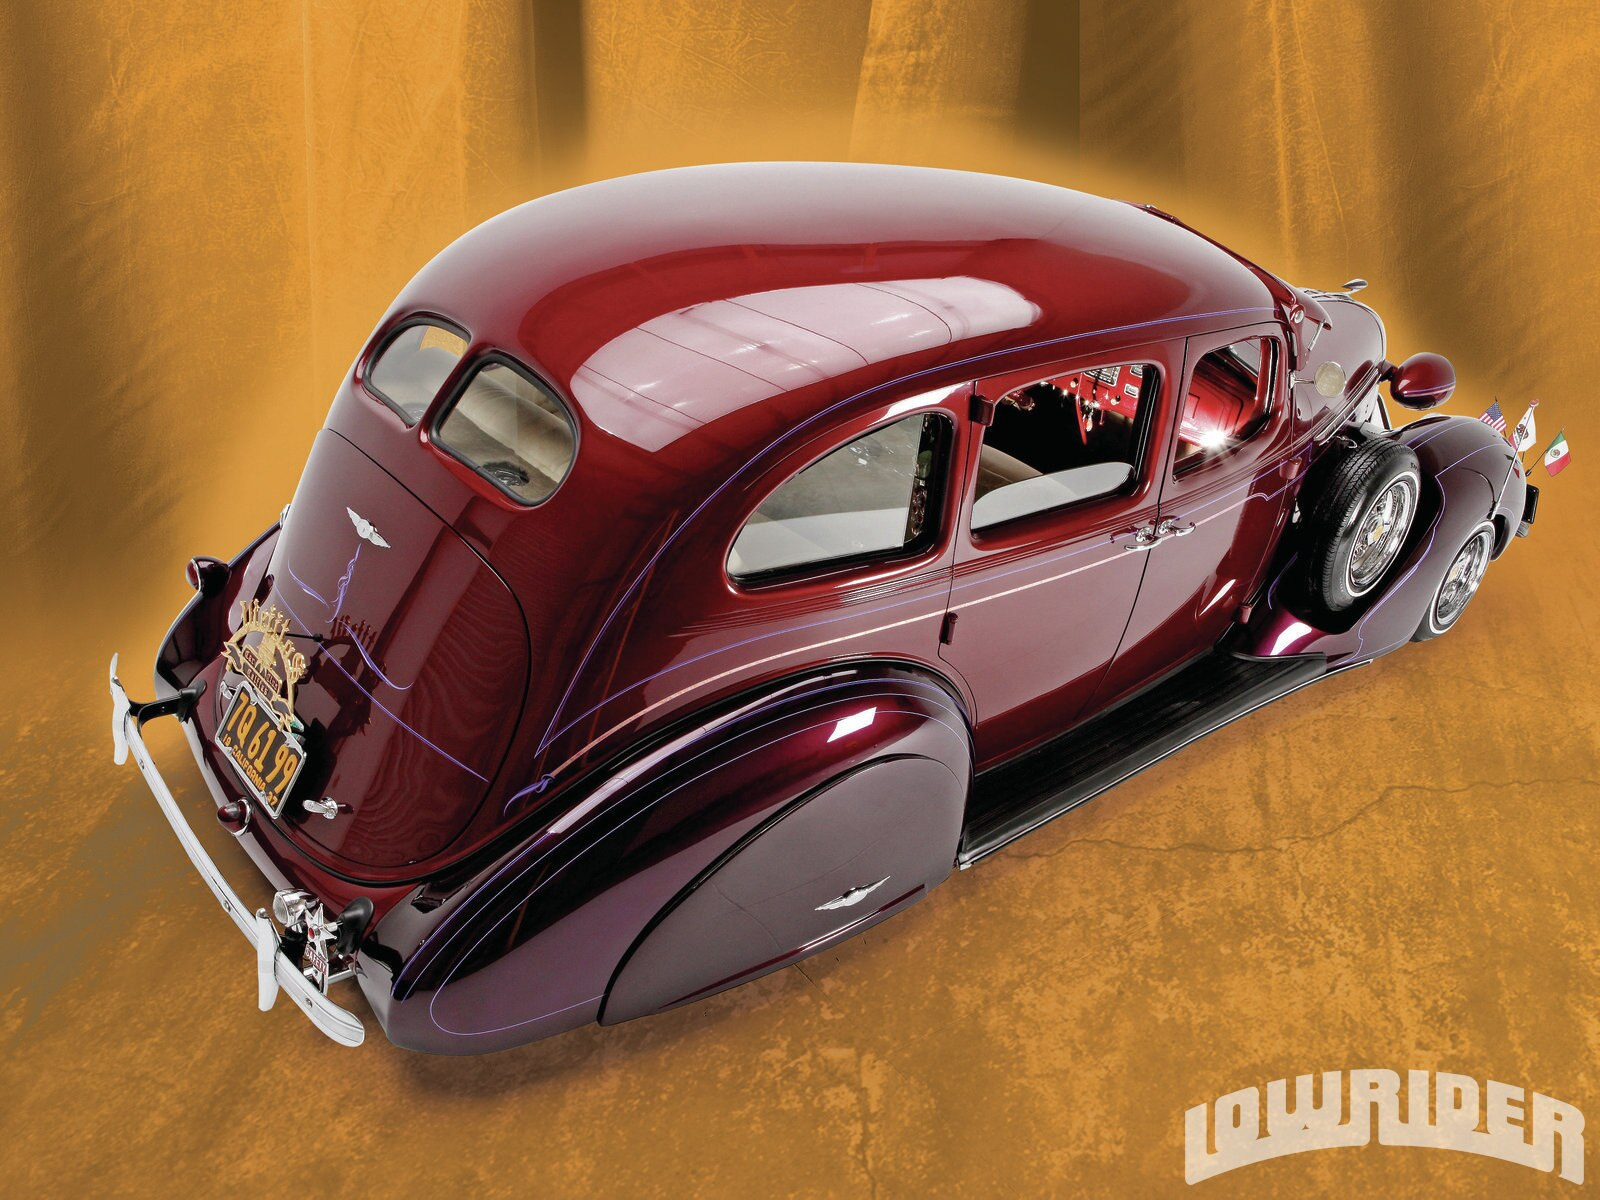 1109-lrmp-05-o-1937-hudson-terraplane-passenger-side-rear-quarter-view2